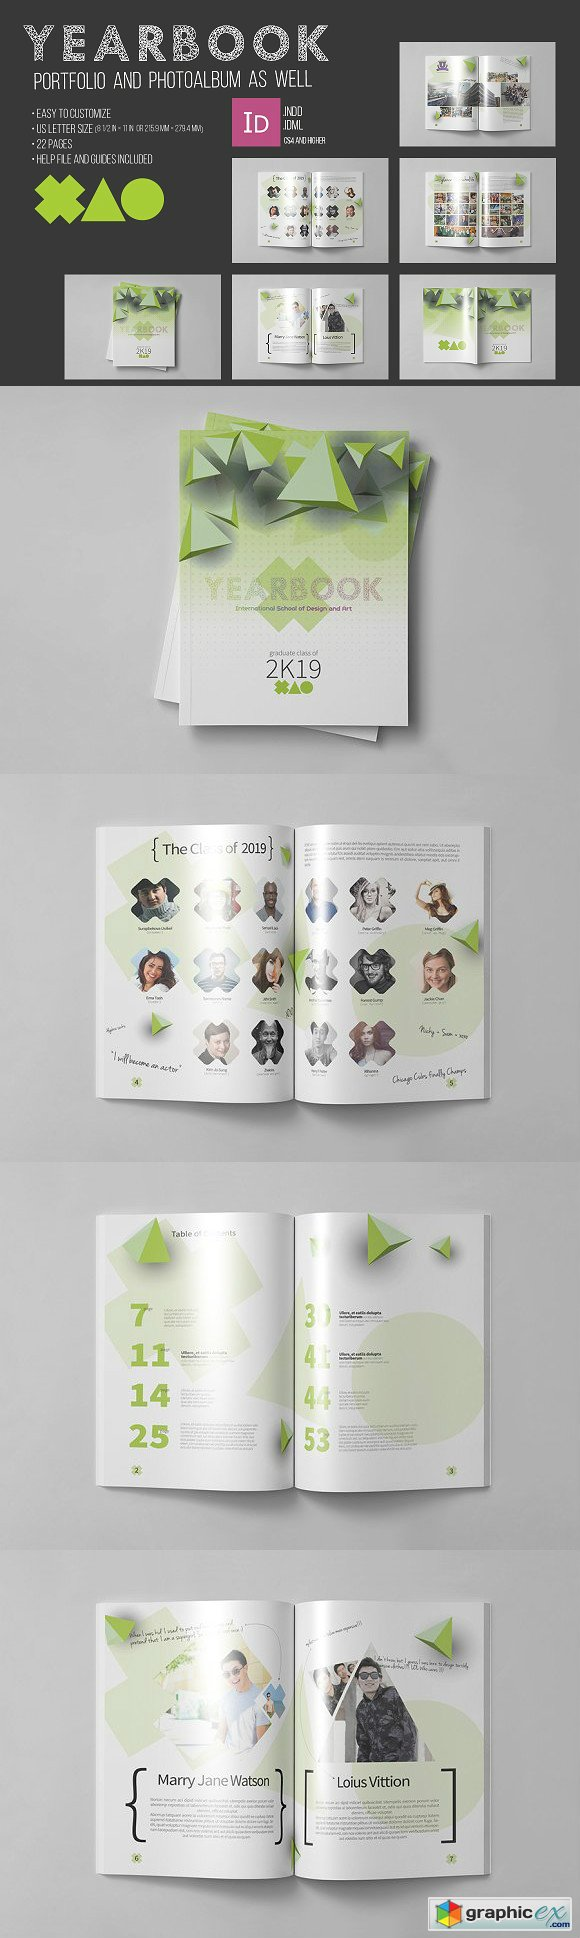 Indesign & Powerpoints » page 160 » Free Download Vector Stock Image ...